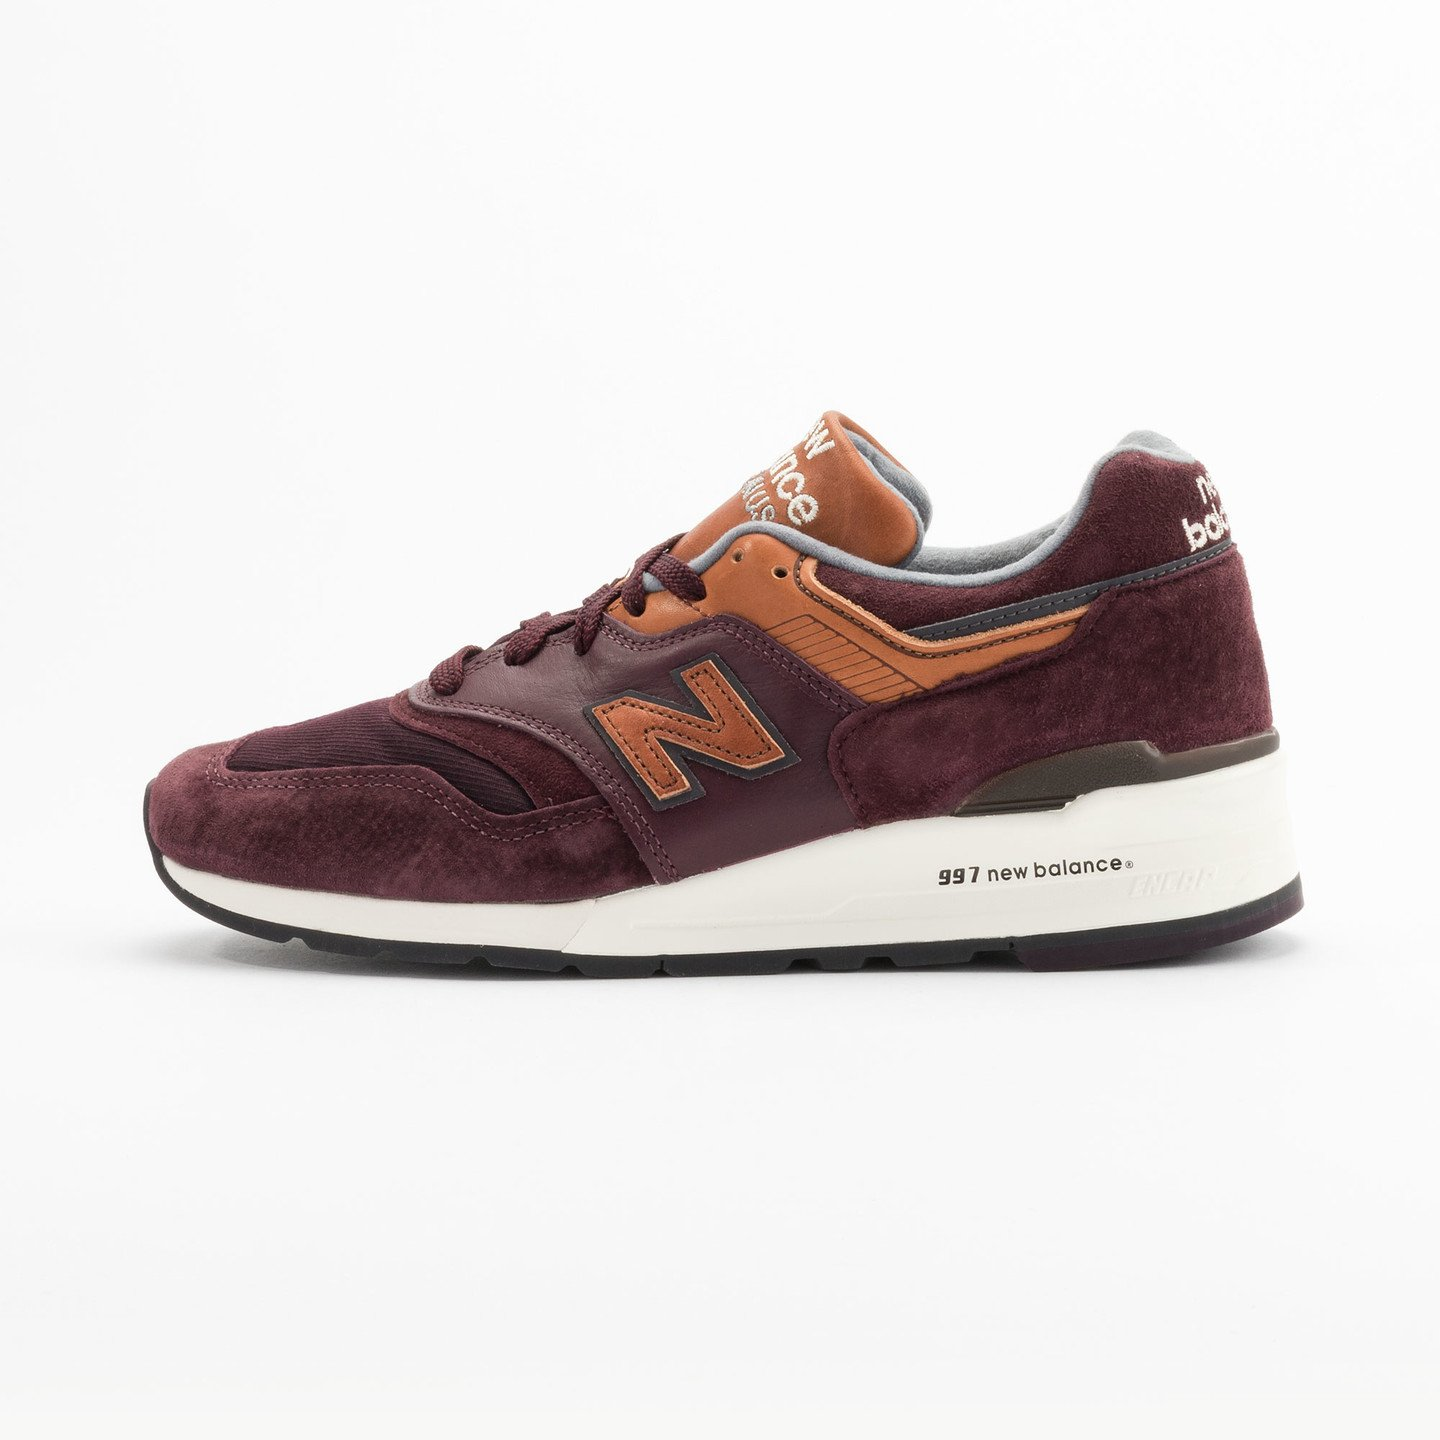 New Balance M997 Made in USA Burgundy / Light Brown M997DSLR-42